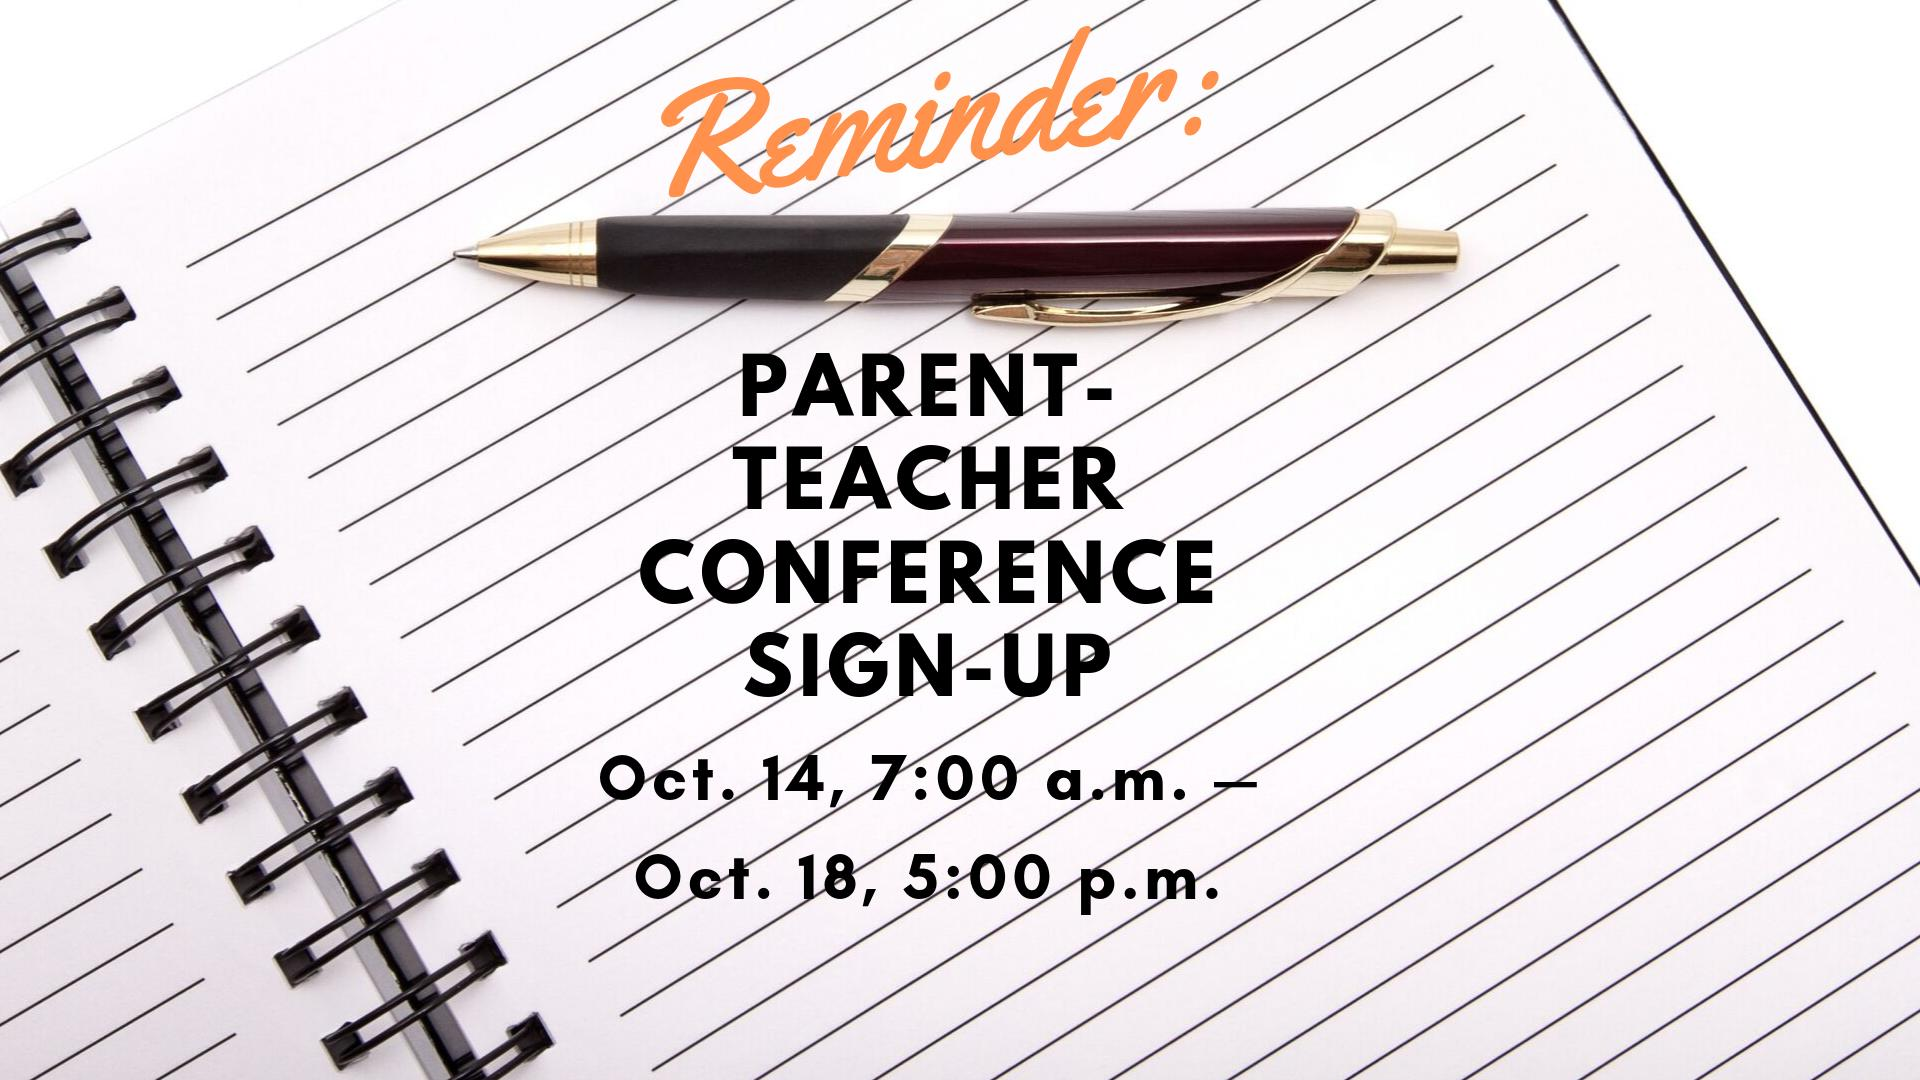 Conferences take place Oct. 23 & 24